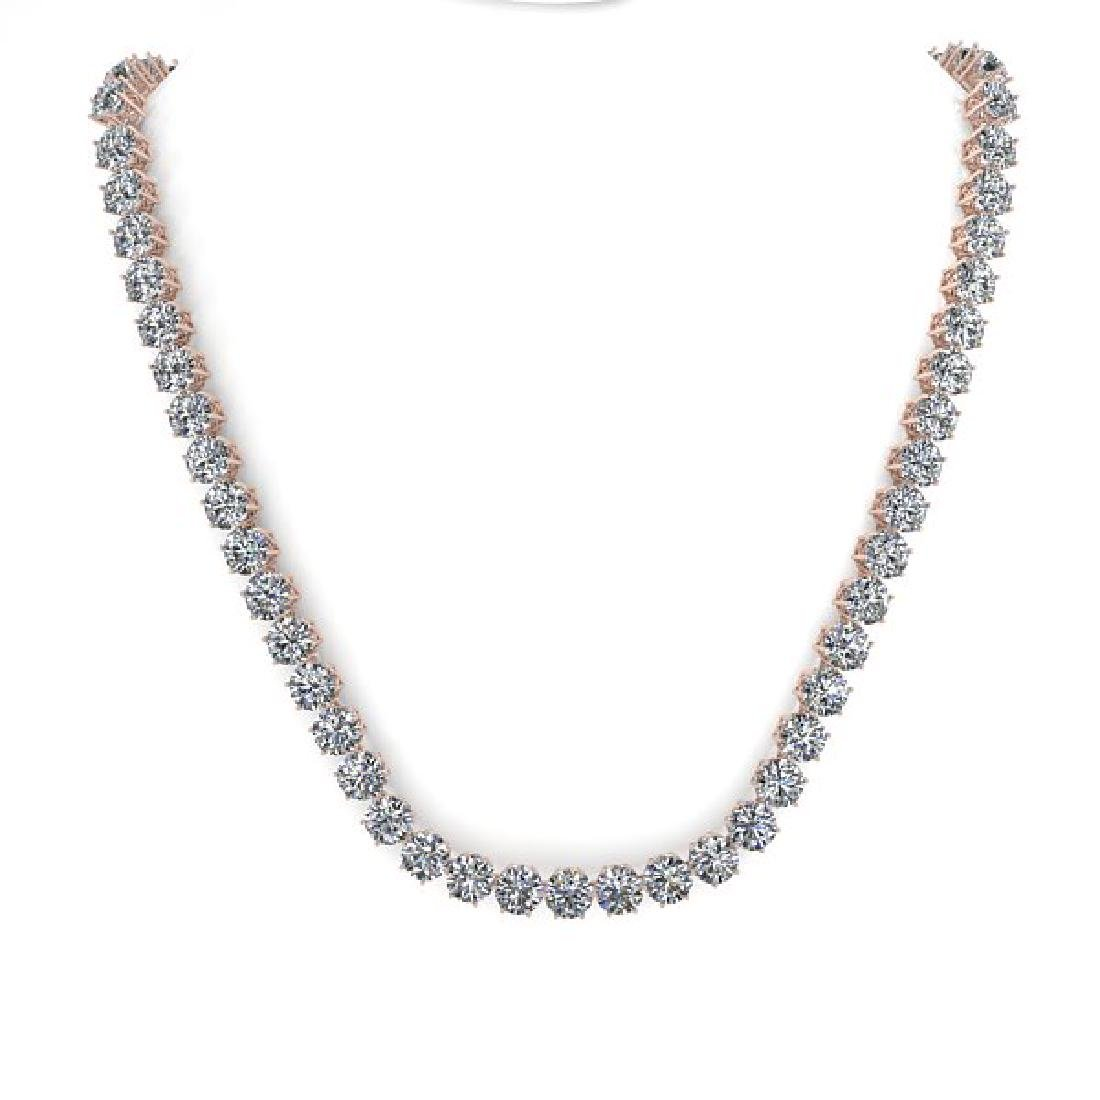 39 CTW SI Certified Diamond Necklace 18K Rose Gold - 3